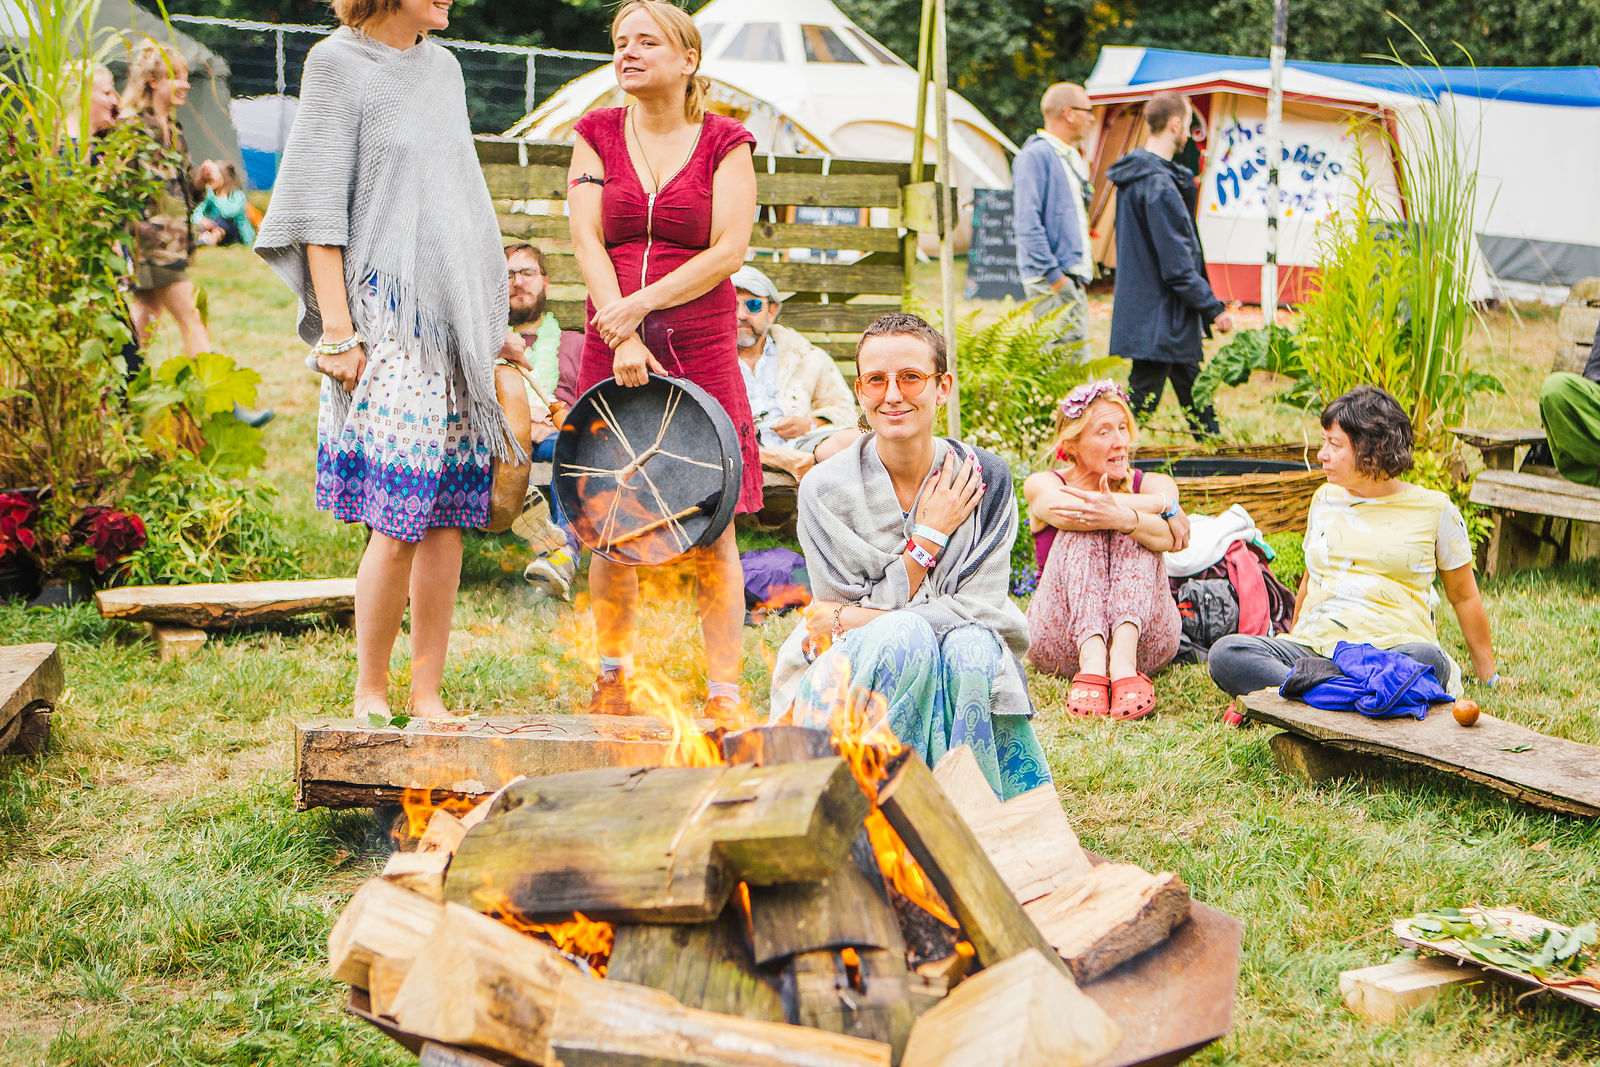 The Healing Meadow Opening Ceremony